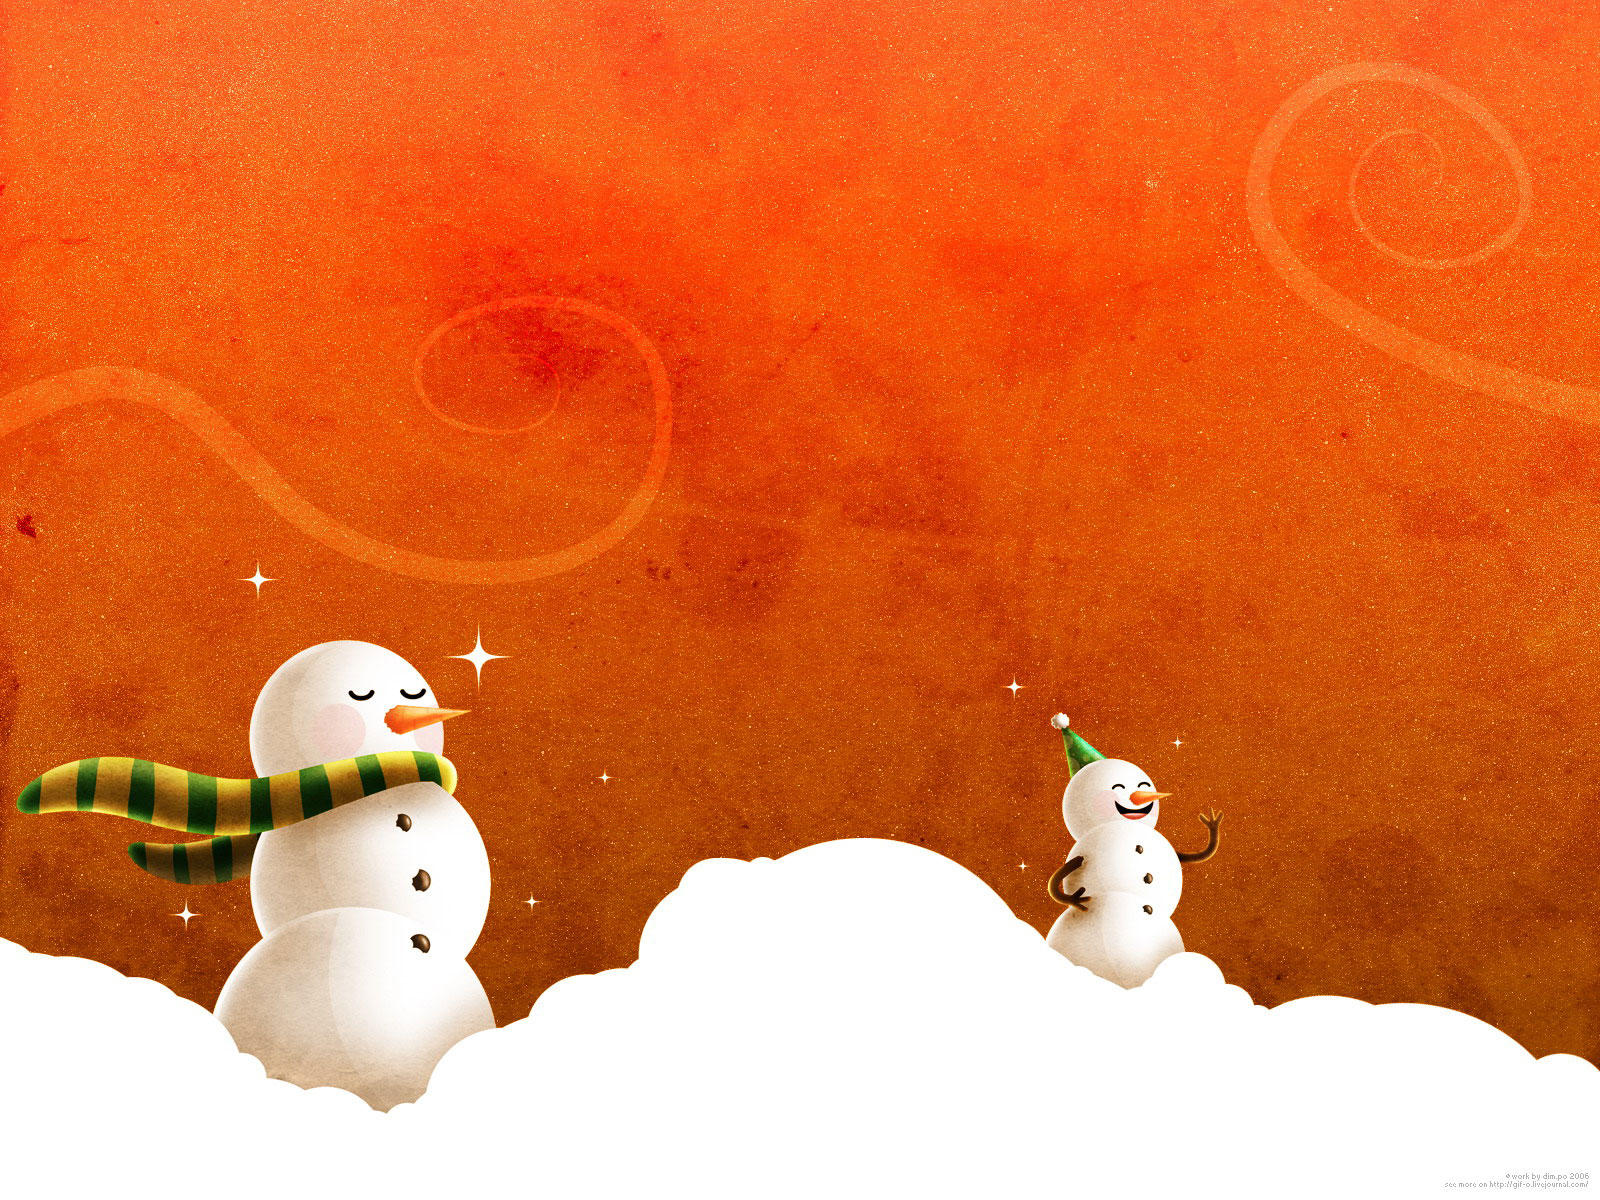 Bonhomme de neige wallpaper wide